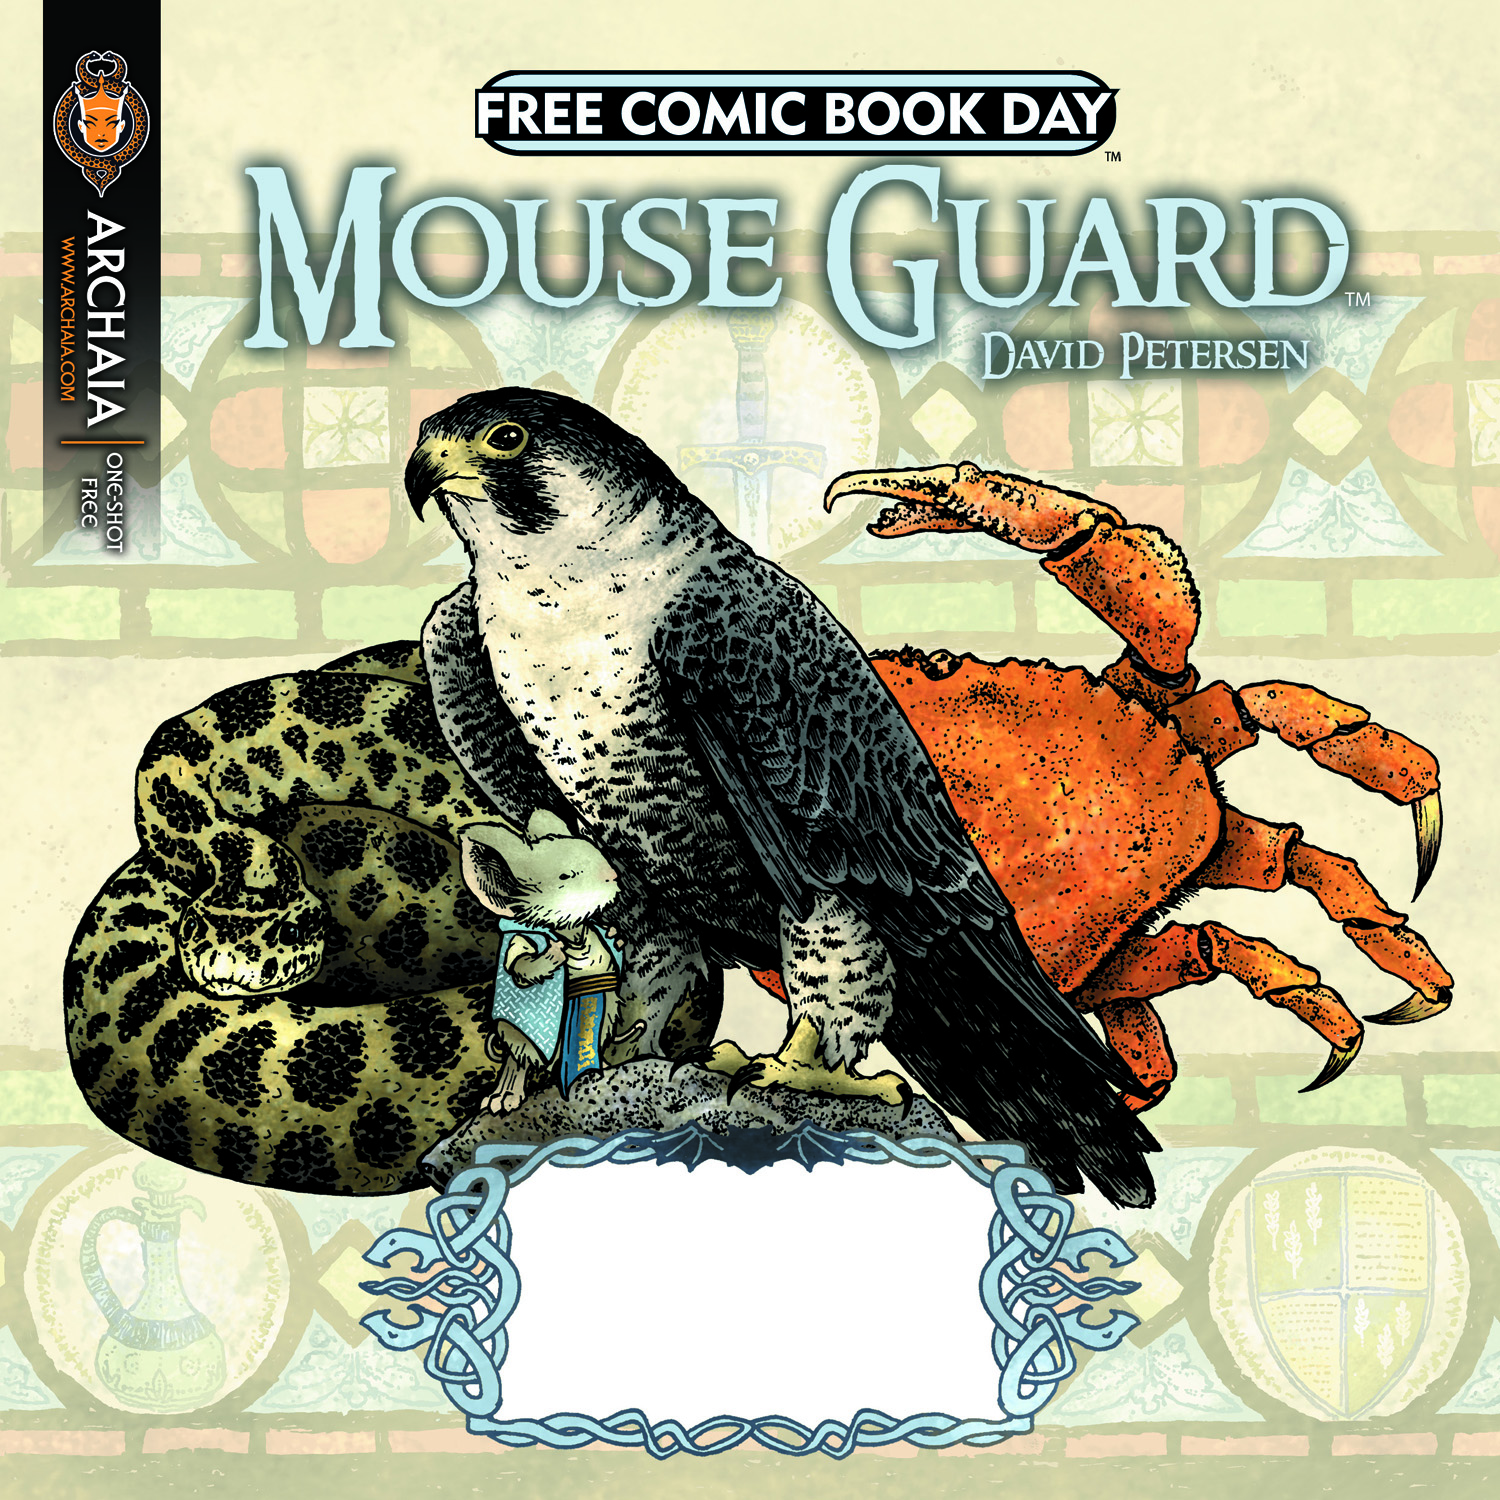 Is Free Comic Book Day Worth It Reddit: FREE COMIC BOOK DAY: Archaia Shows Off Mouse Guard/The